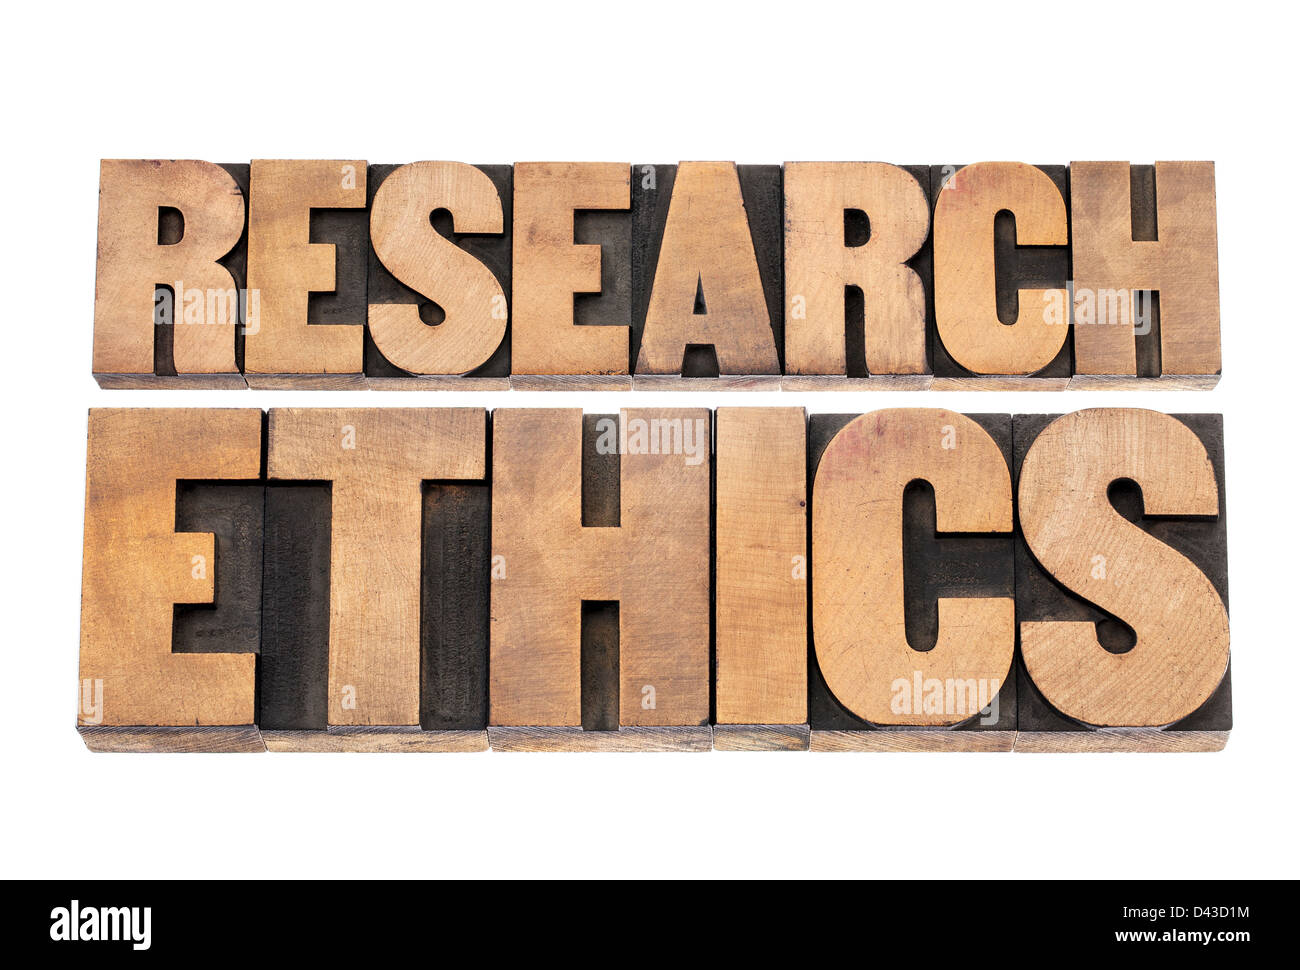 research ethics - isolated text in letterpress wood type printing blocks - Stock Image